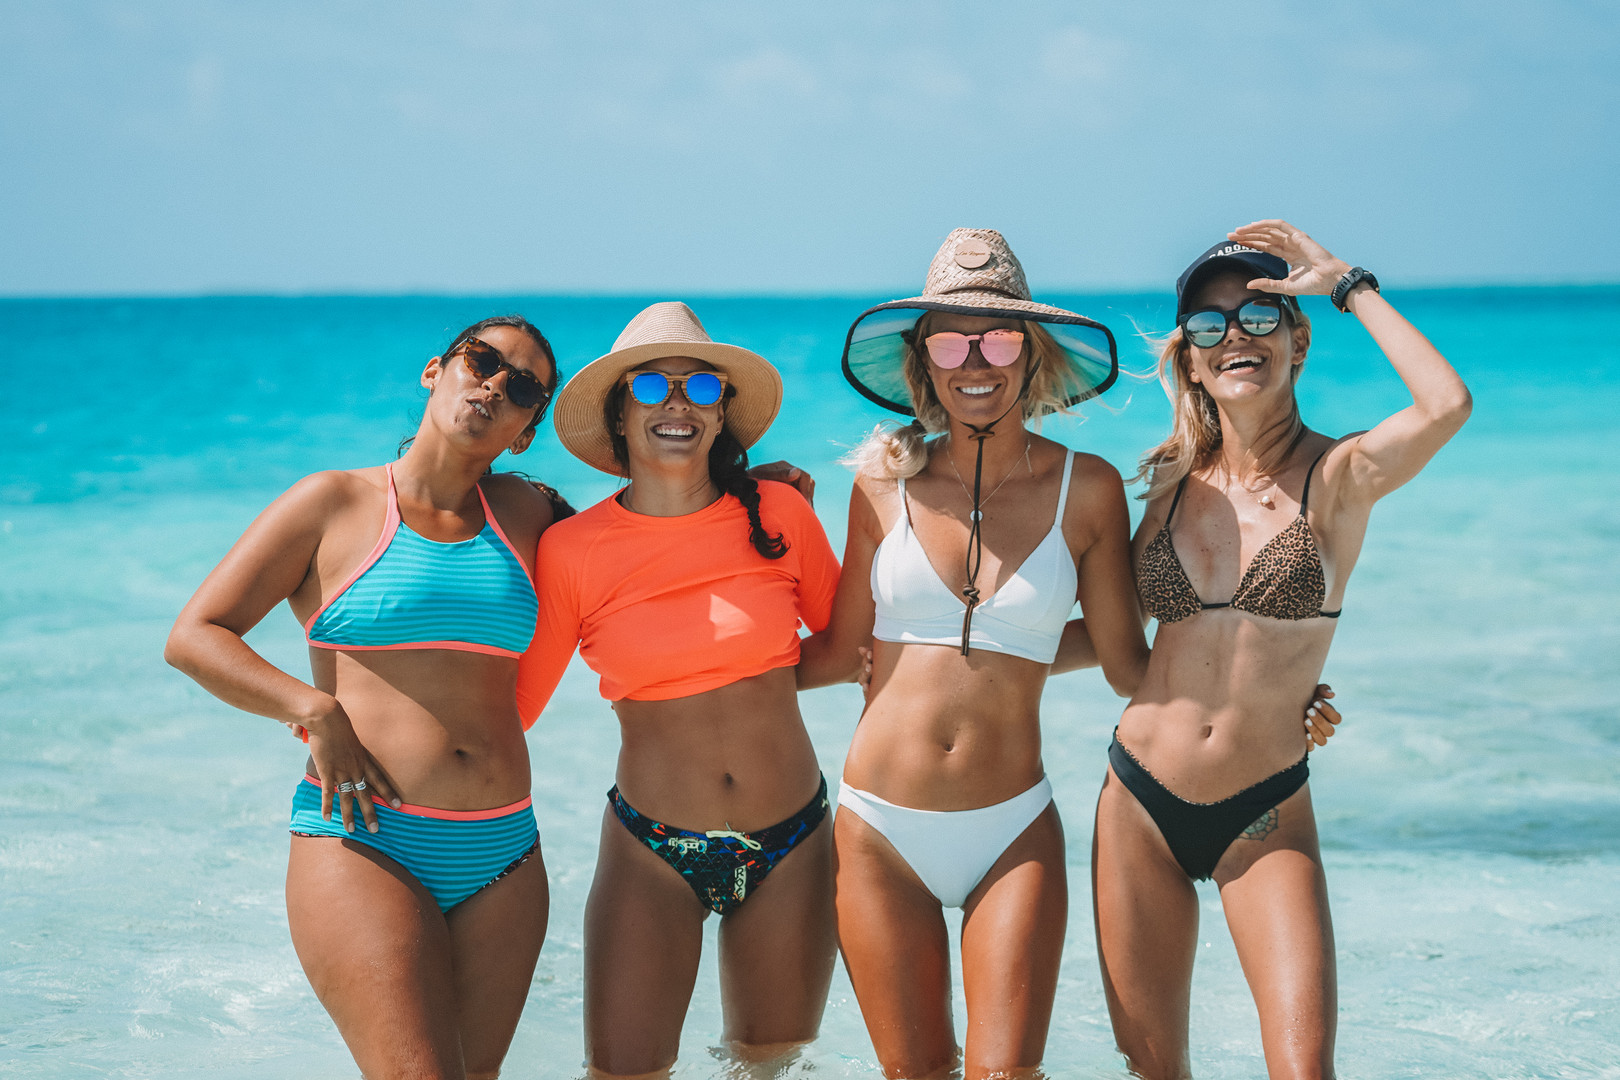 Los Roques Chicas